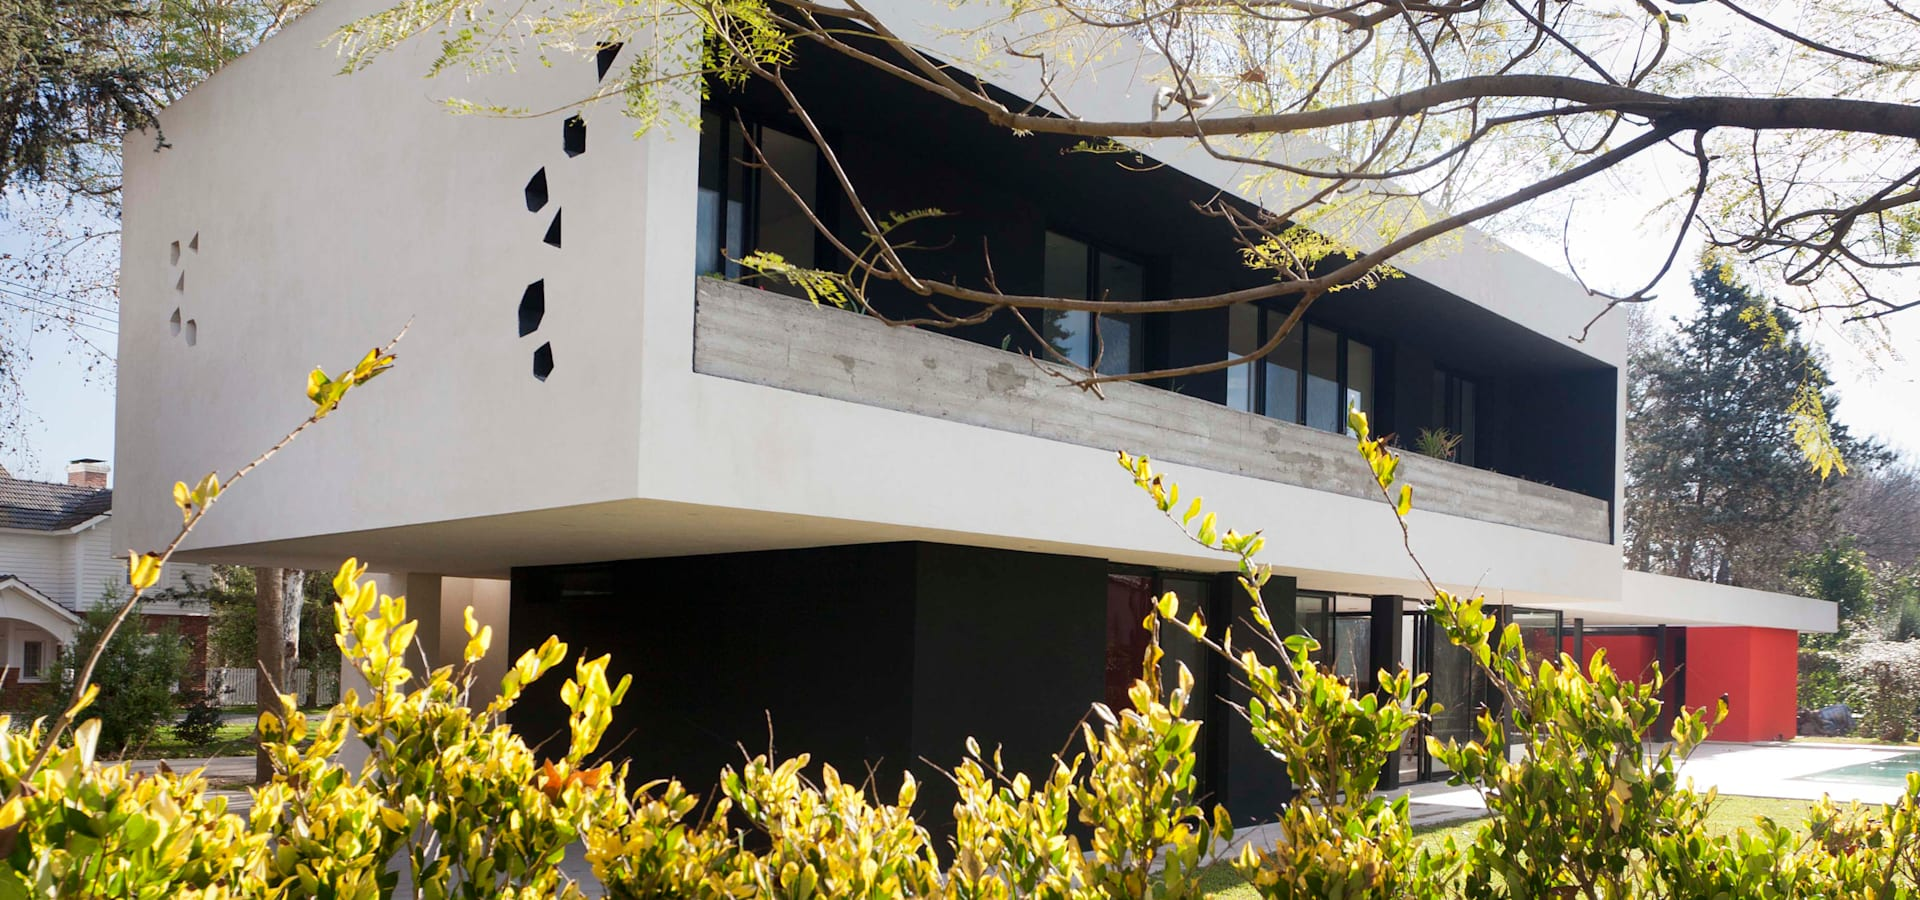 Enrique Barberis Arquitecto